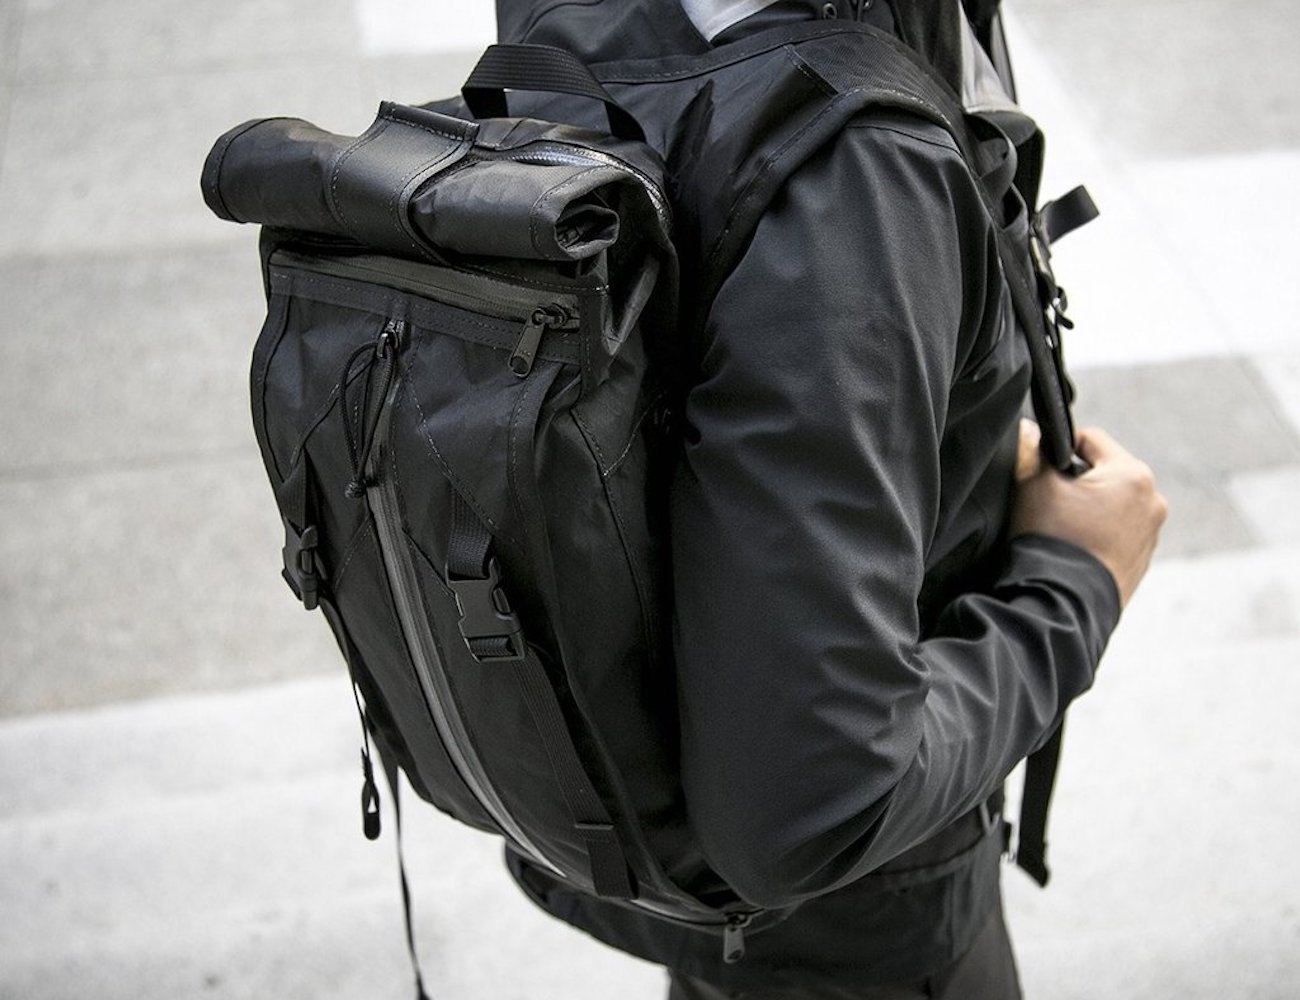 The Hauser Weatherproof Hydration Pack